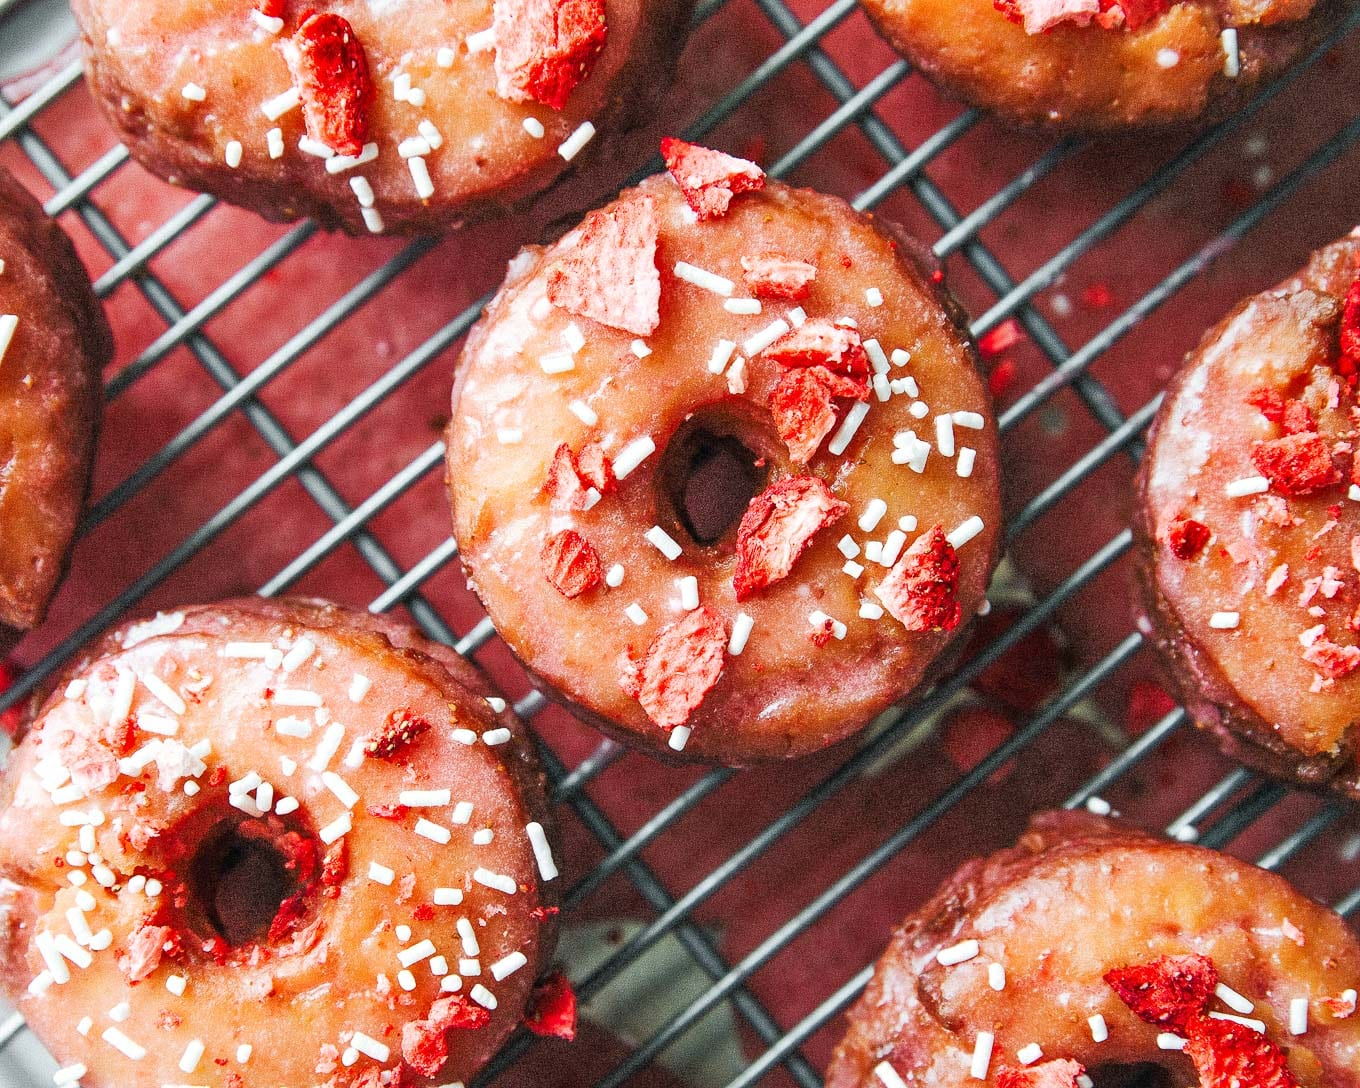 These fried Strawberry Lemon Cake Donuts have a soft, tender lemon almond cake absolutely coated in a strawberry glaze made with a quick homemade strawberry jam! And easier than you think!